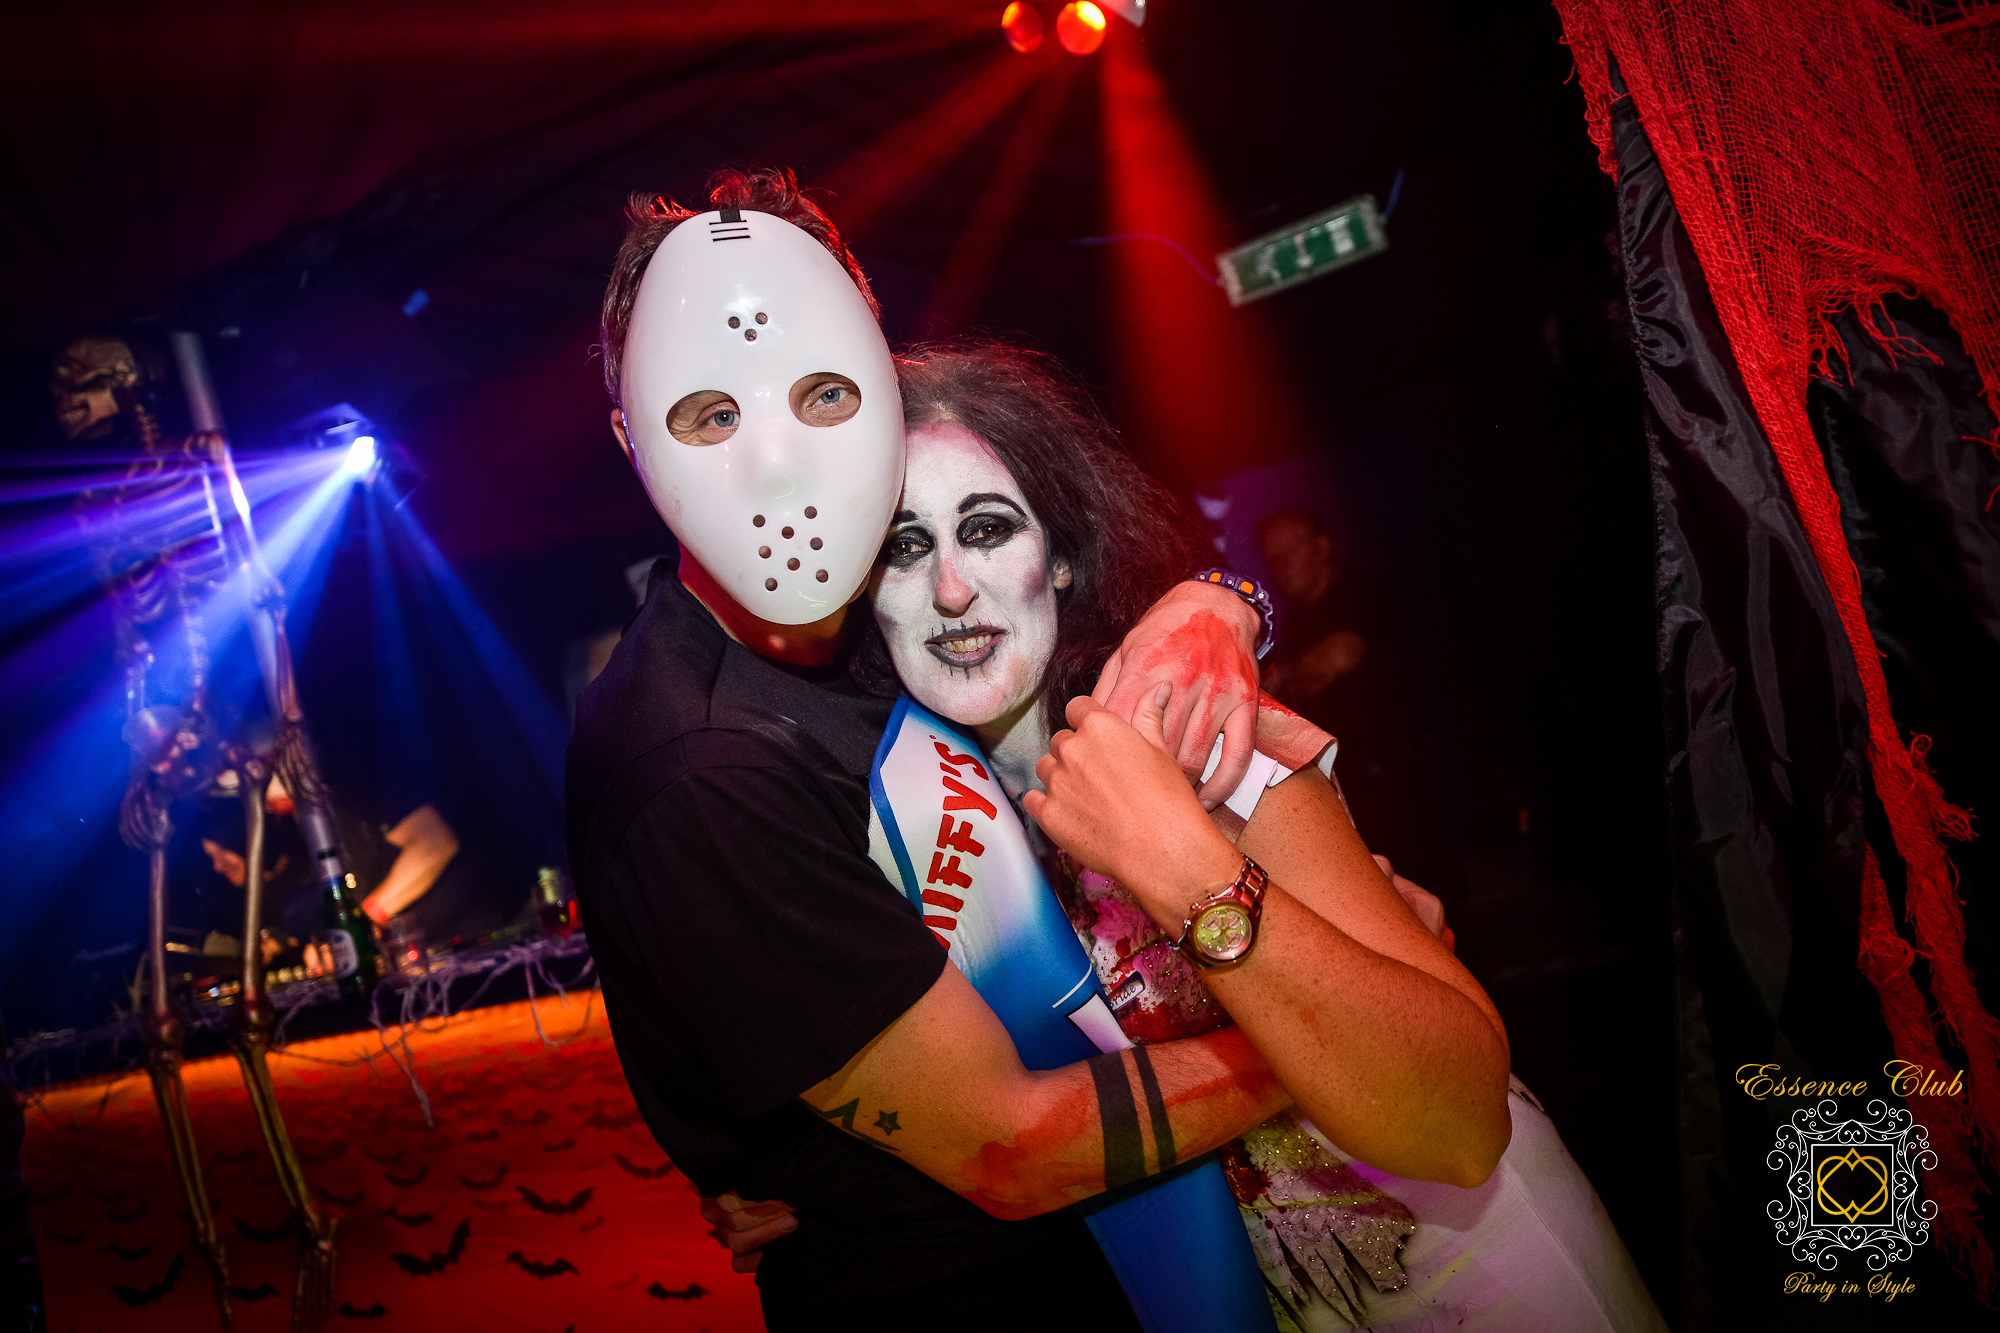 Halloween at essence club heaven hell